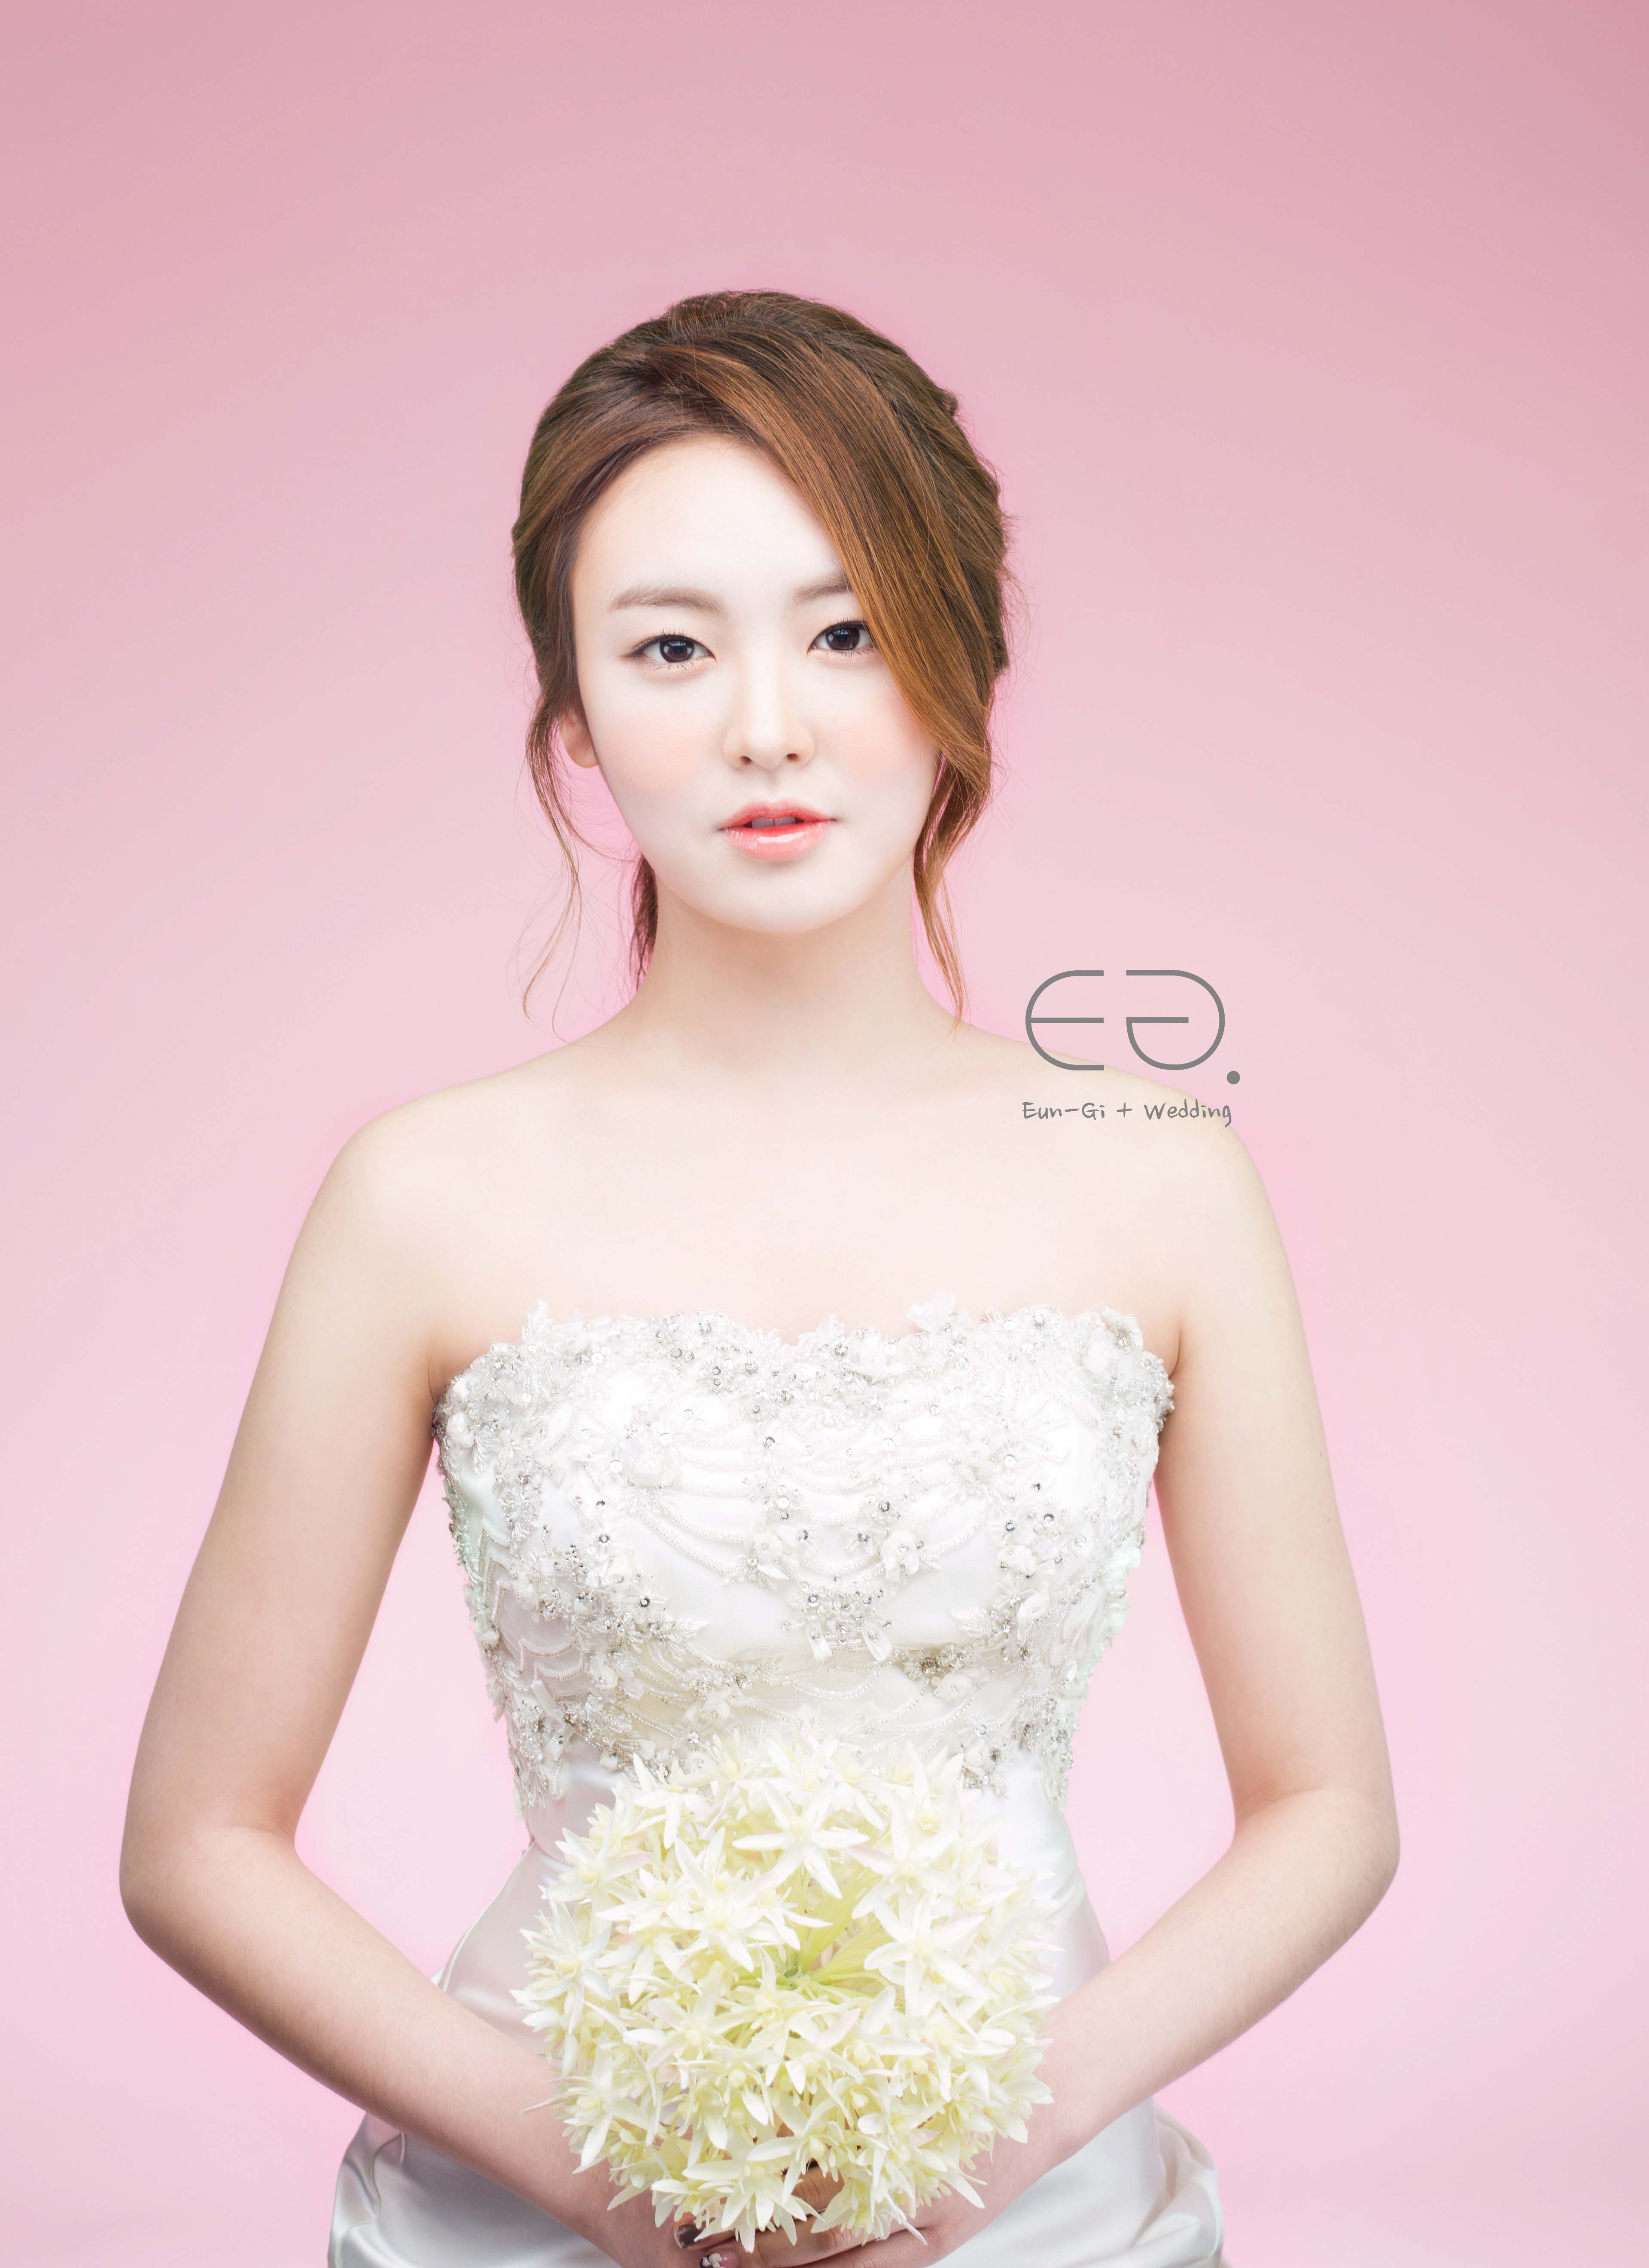 Make Up Wedding Natural Korea : Korean Bridal Make-up and Hairstyle No.9 Korea Prewedding ...